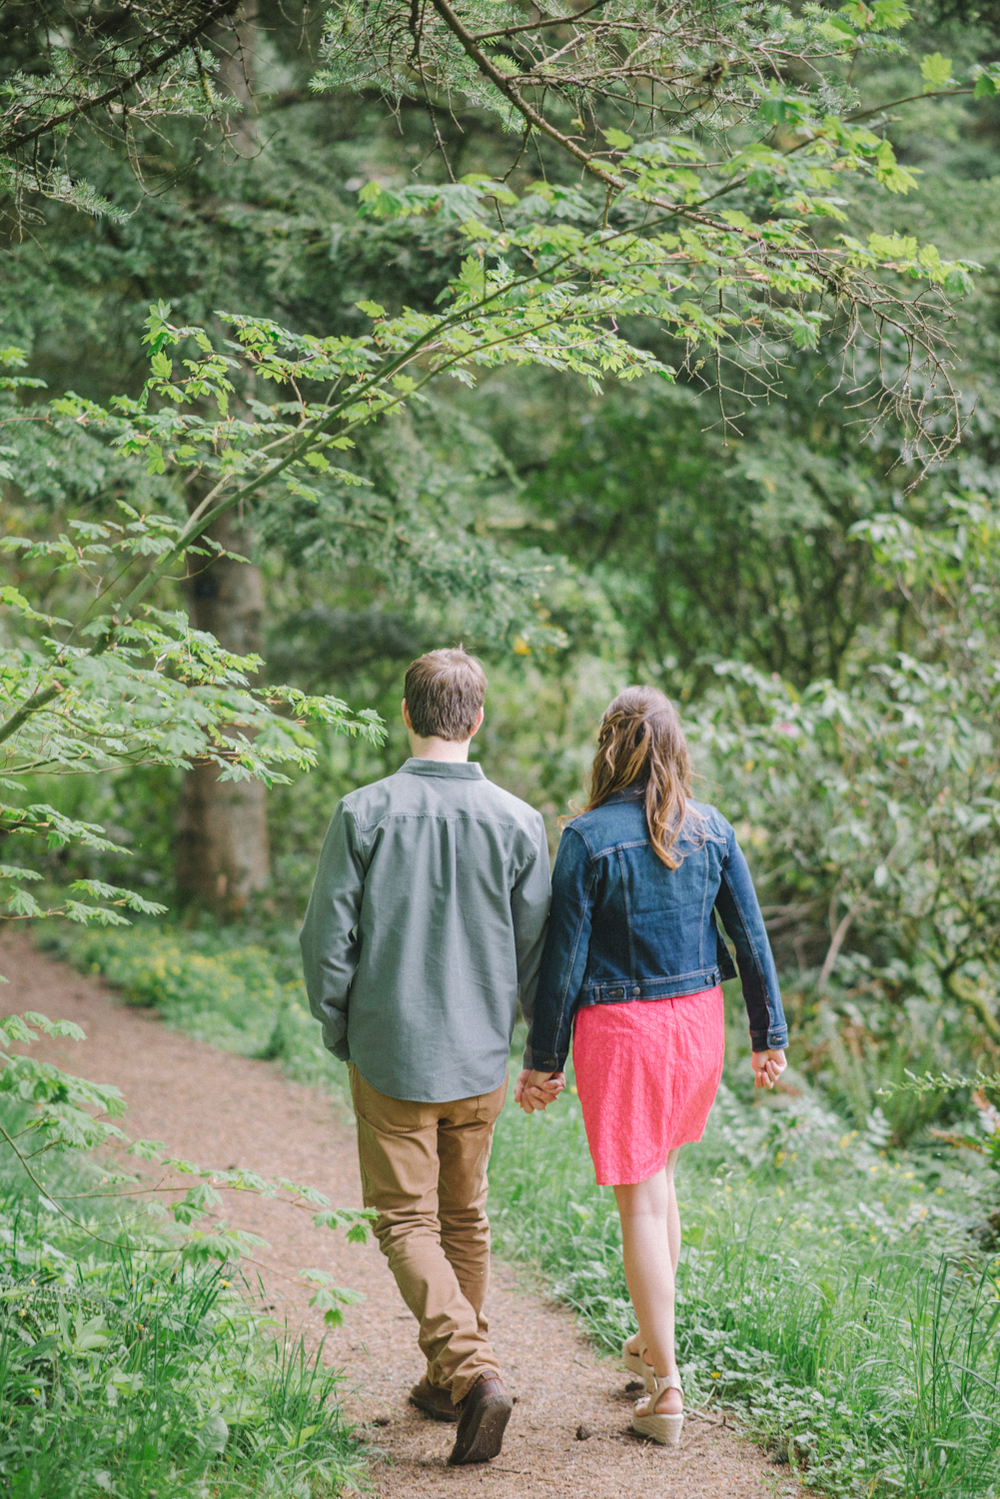 Portland-oregon-engagement-session-photographer-hoyt-arboretum-washington-park-shelley-marie-photography-forest-natural-woodland-walking-holding-hands-15